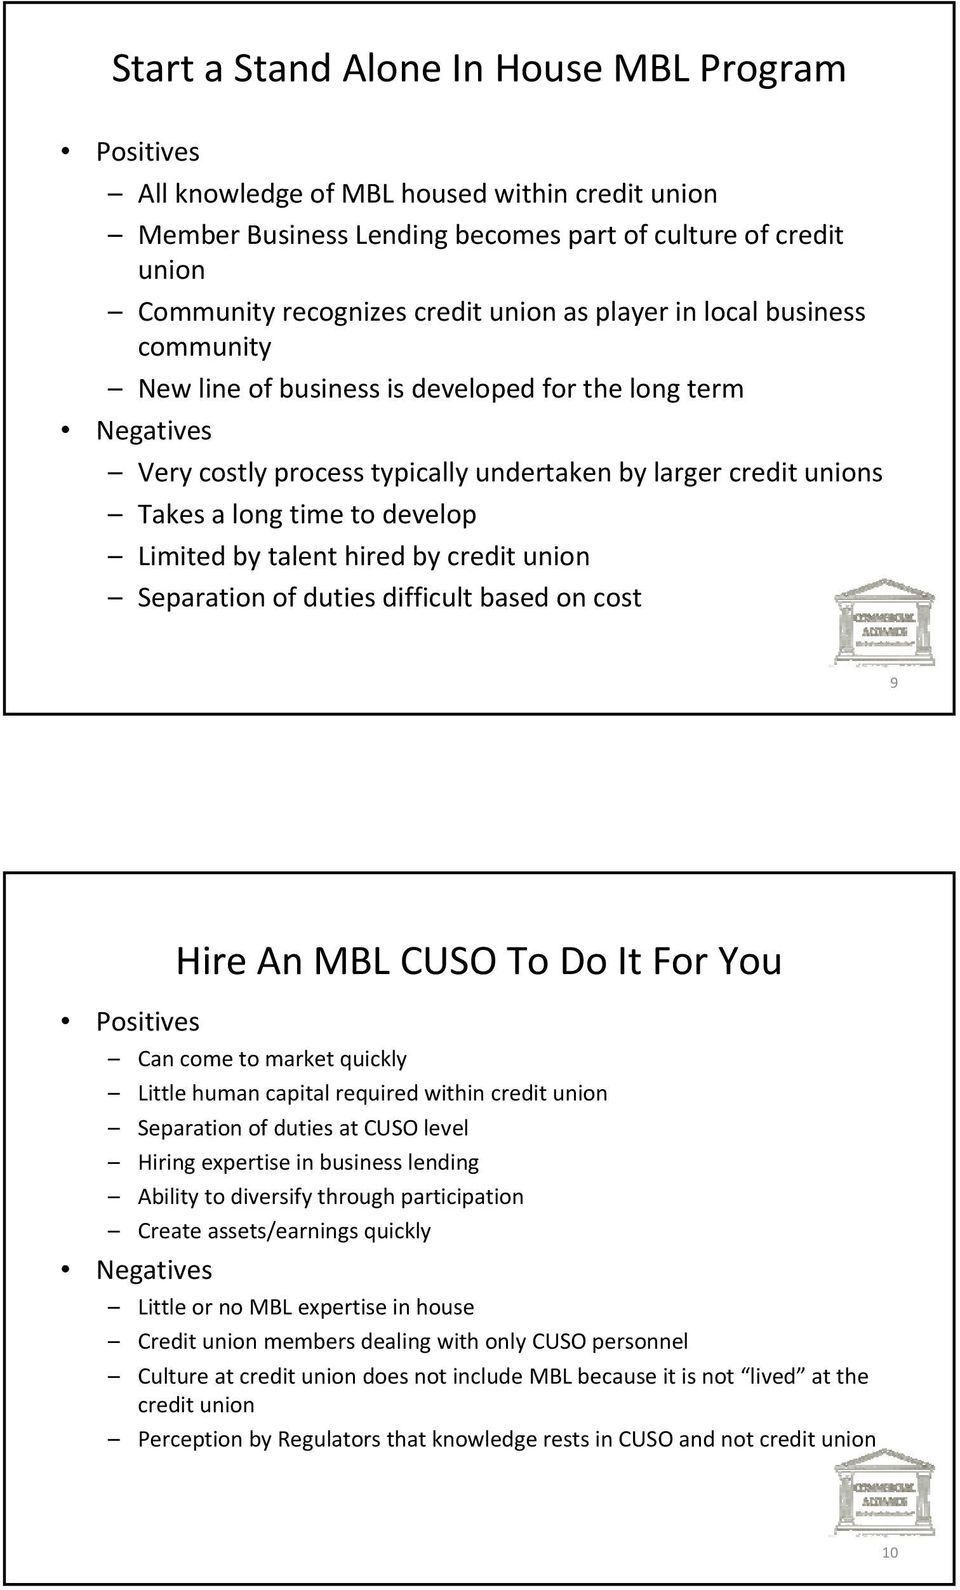 by talent hired by credit union Separation of duties difficult based on cost 9 Positives Hire An MBL CUSO To Do It For You Can come to market quickly Little human capital required within credit union